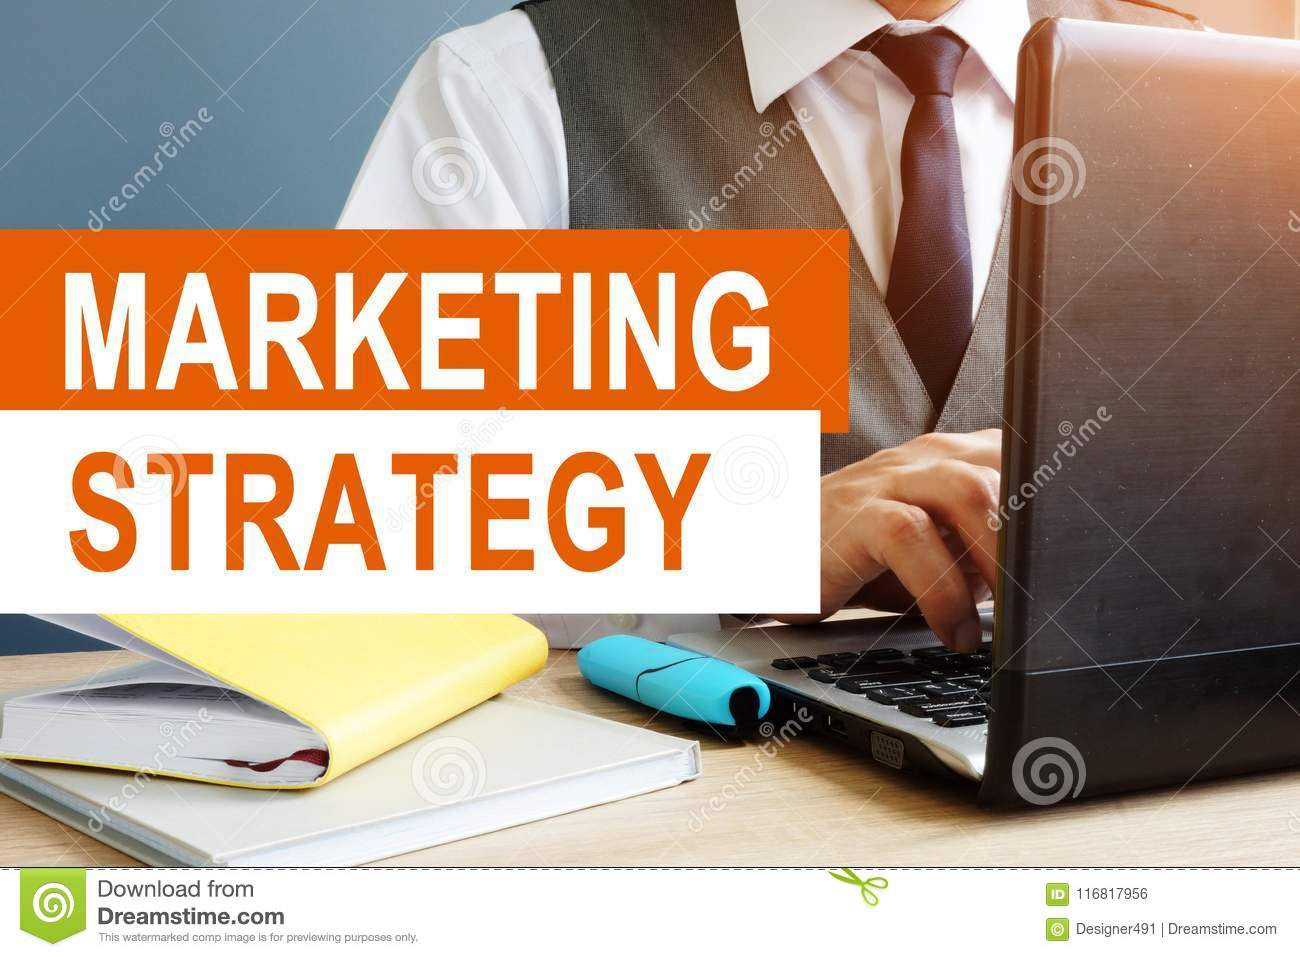 Marketing Strategy concept. Marketer working on laptop.